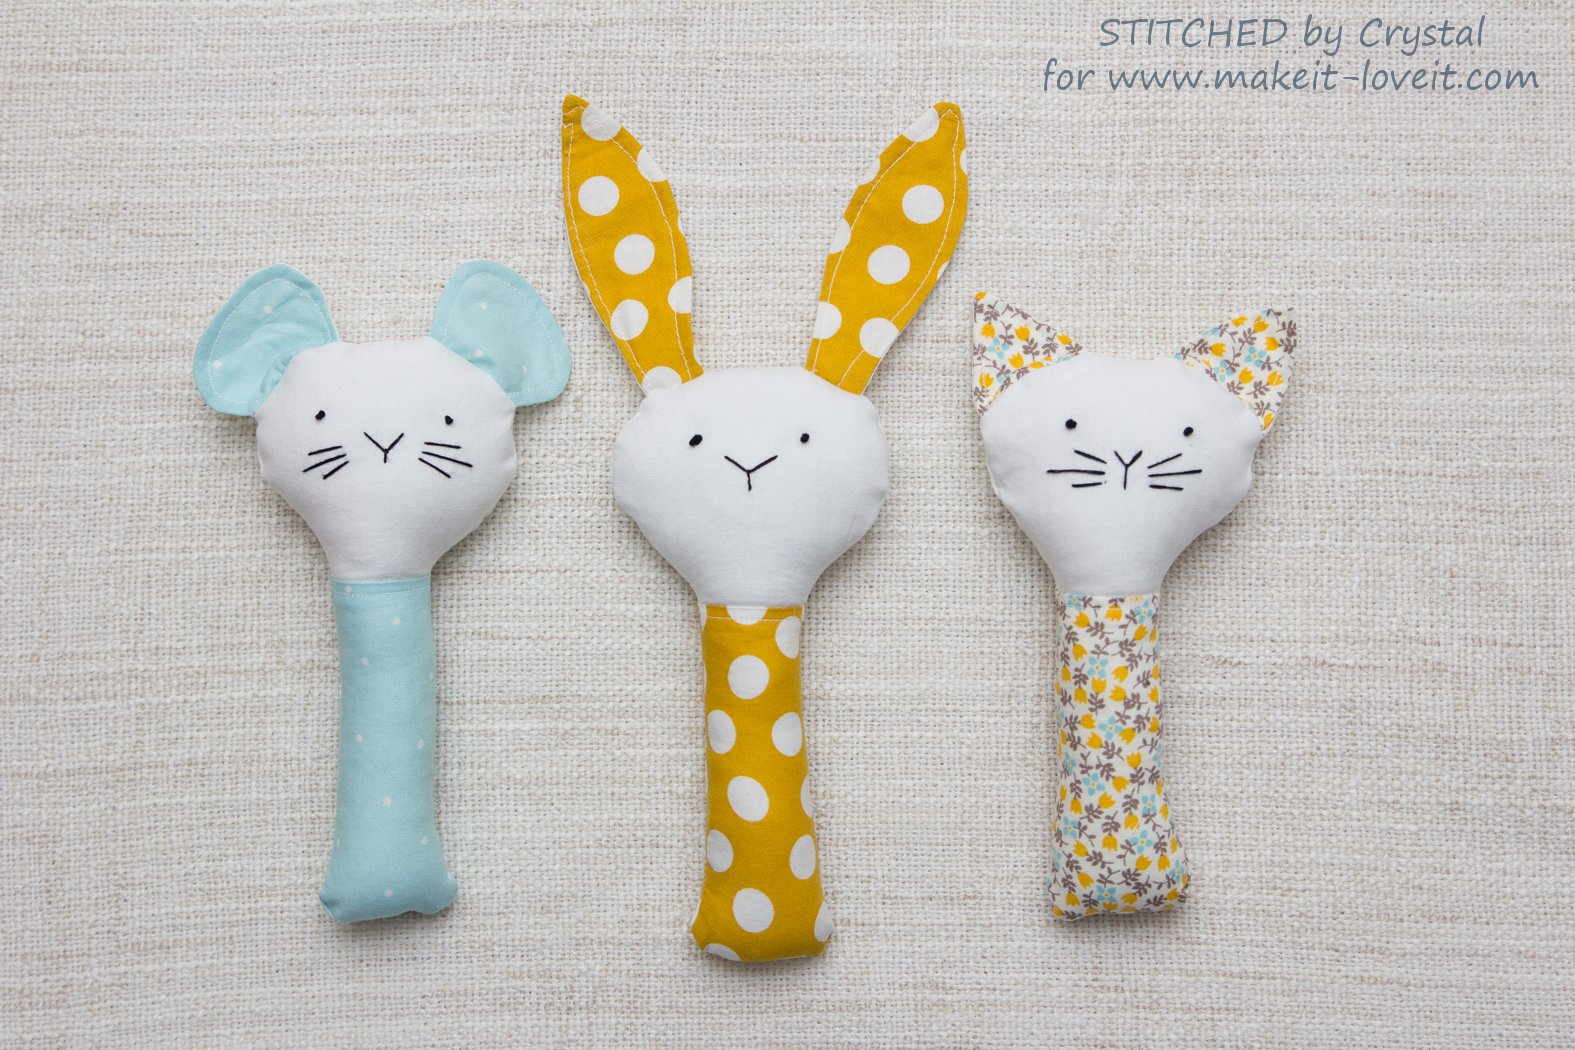 Sew A Plush Rattle For Baby A Bunny Cat Amp Mouse